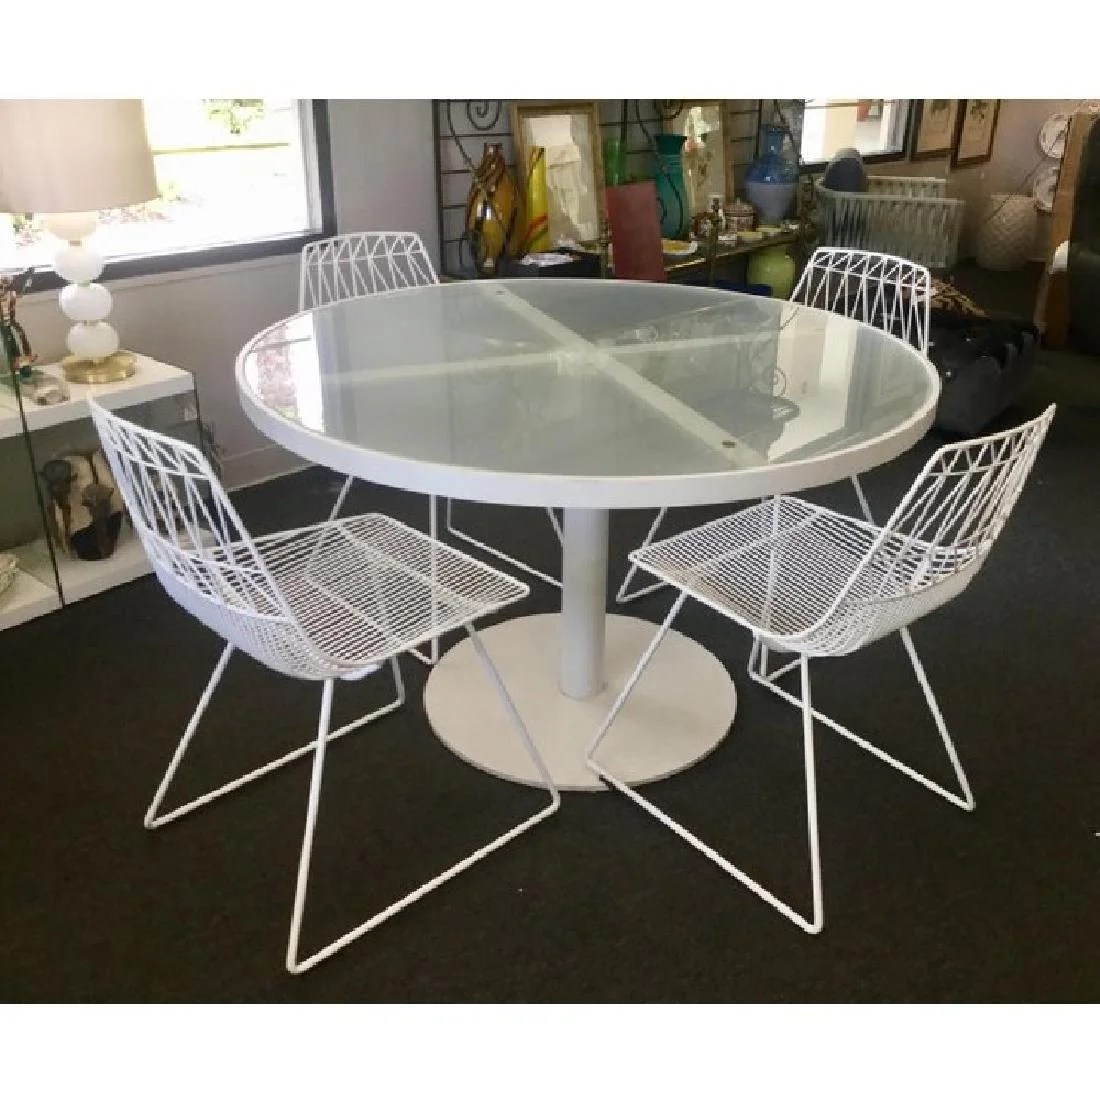 antique metal chairs for sale wooden bar stool vintage italian modern white table 4